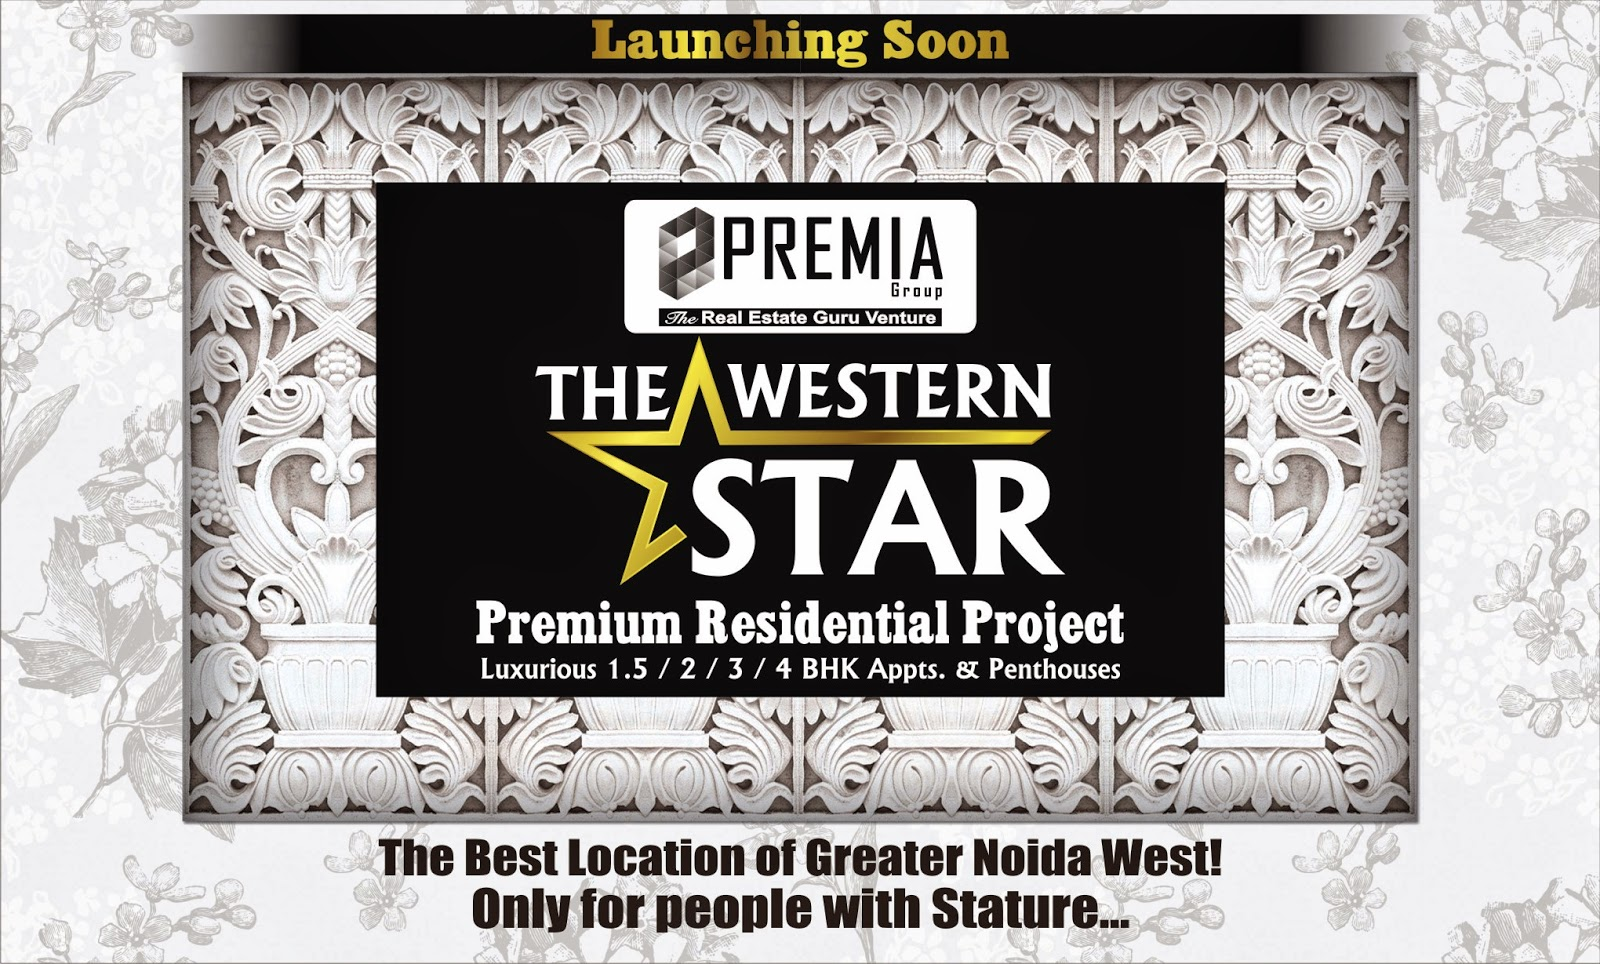 Premia Group Launching Soon The Western Star